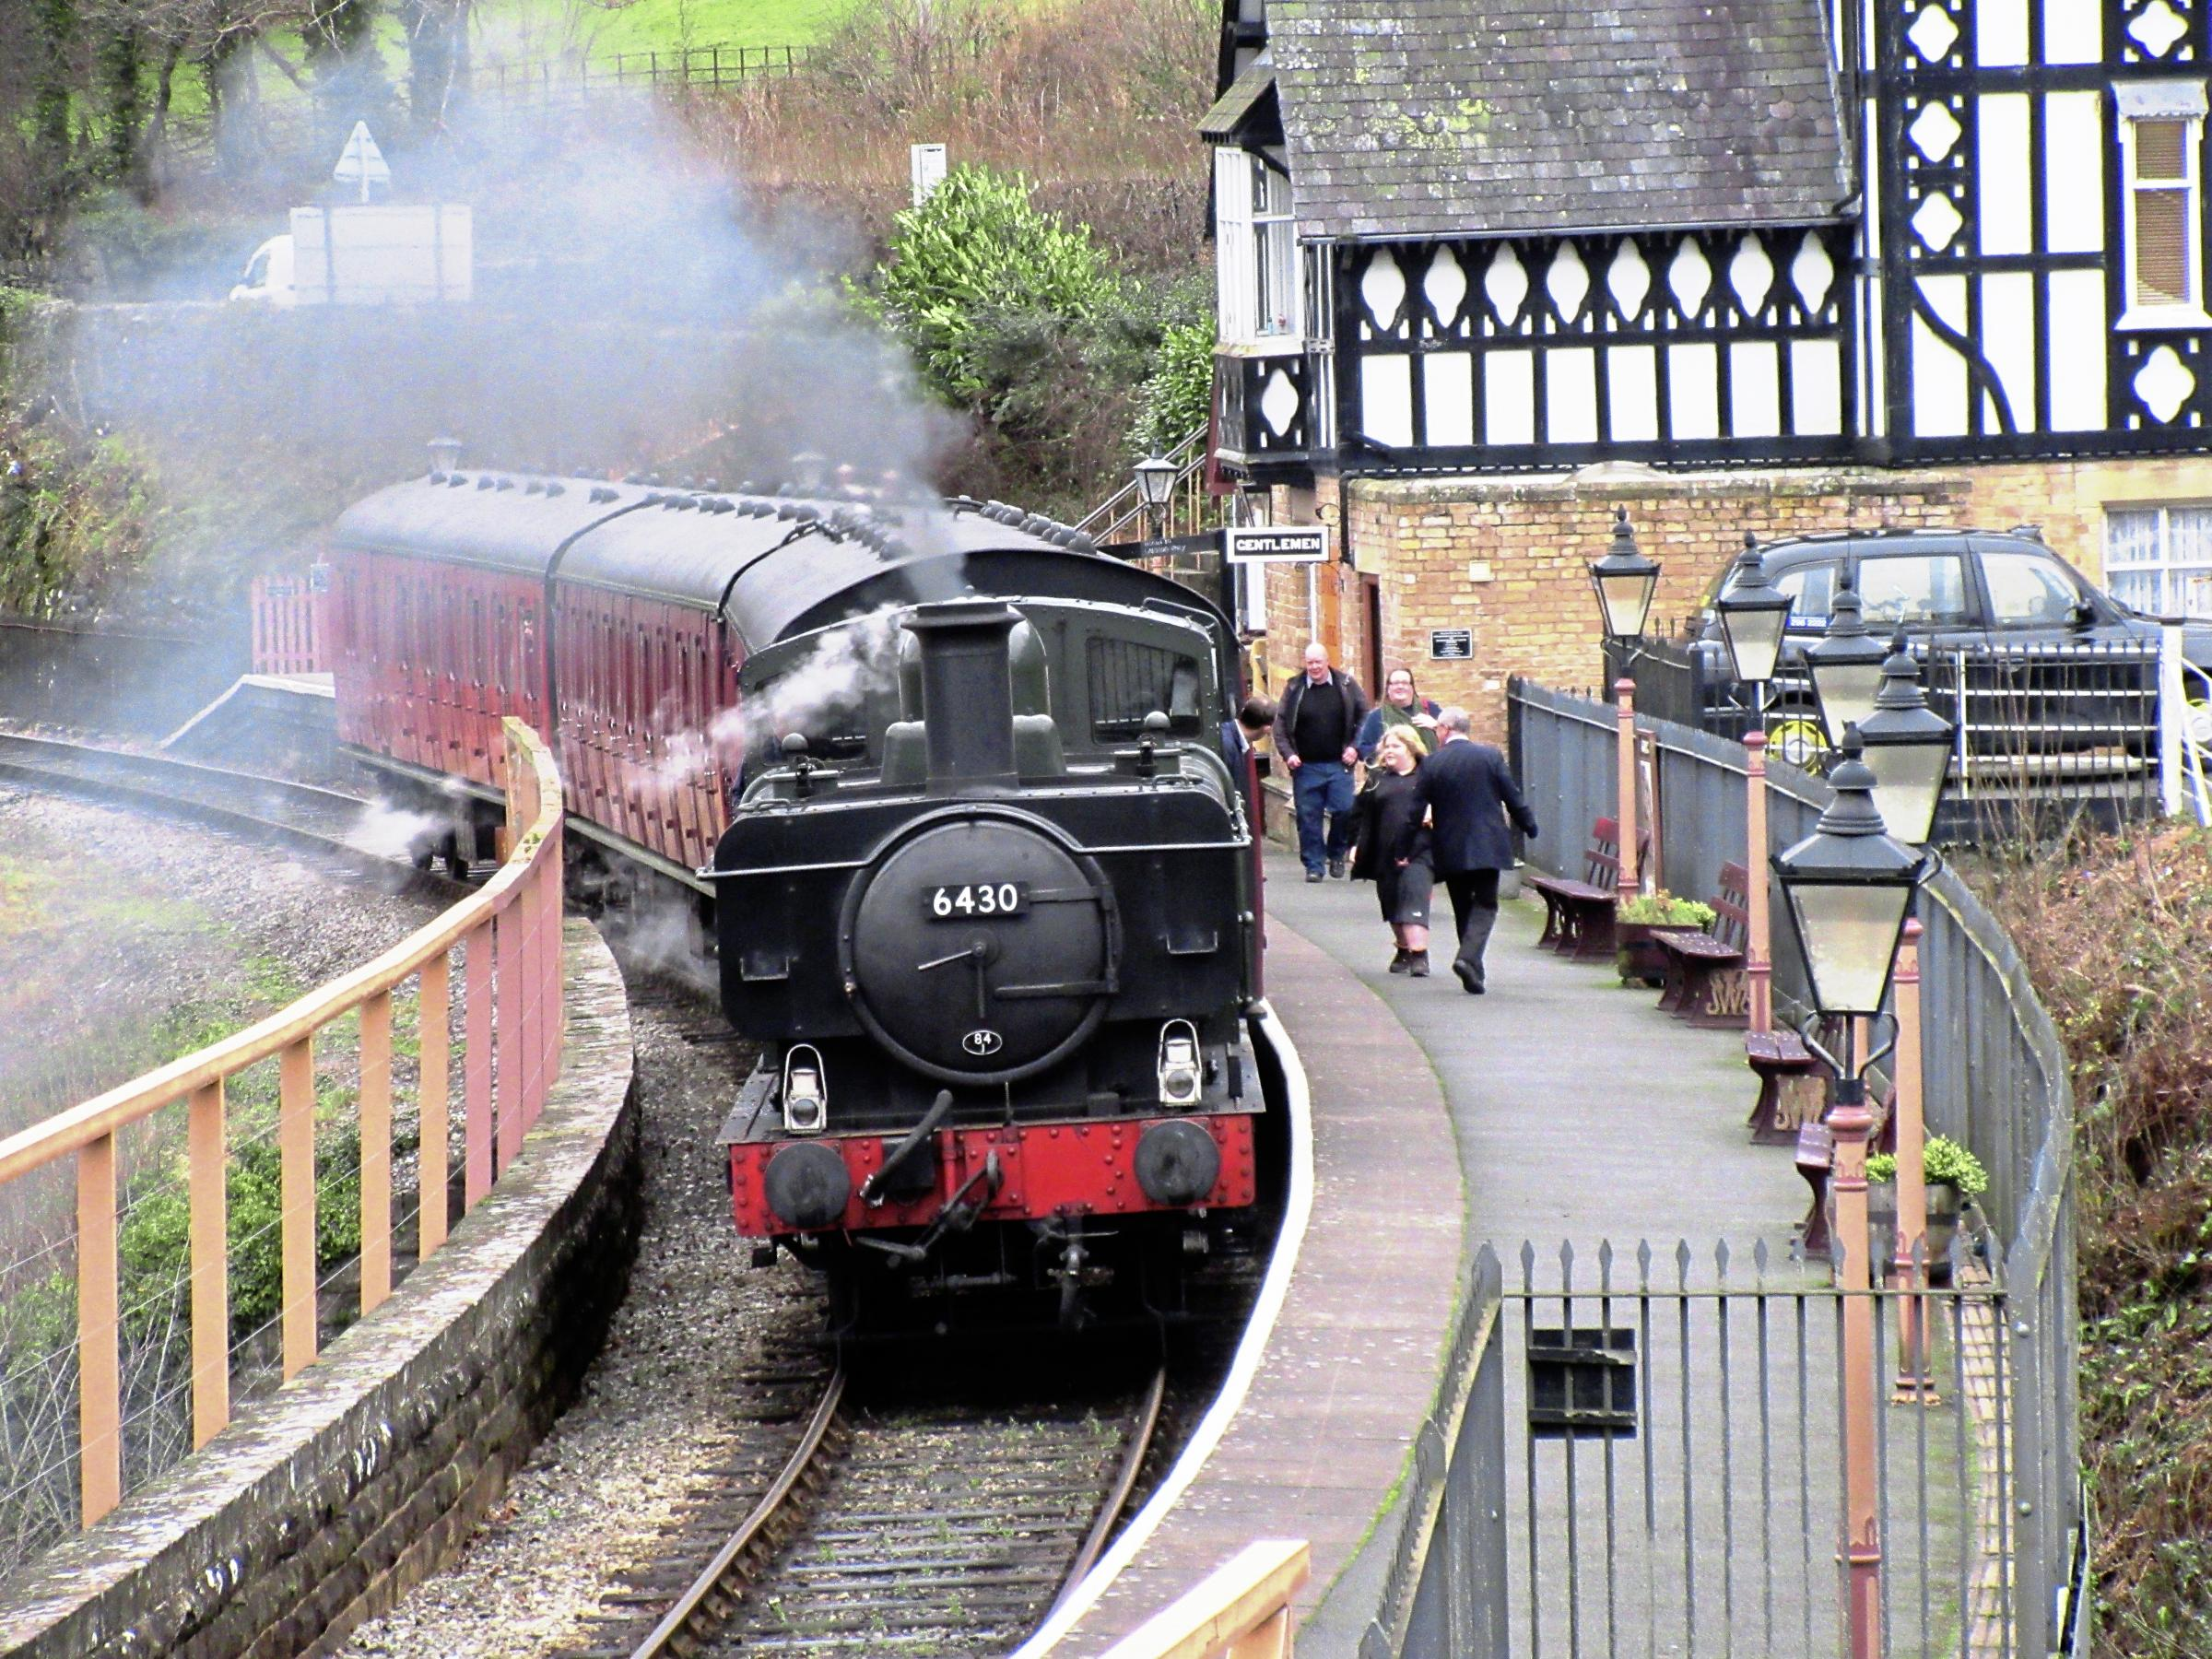 The two engine formation of 5199 and 2807 enters Berwyn station during Llangollen Railway's Winter Warmer weekend event